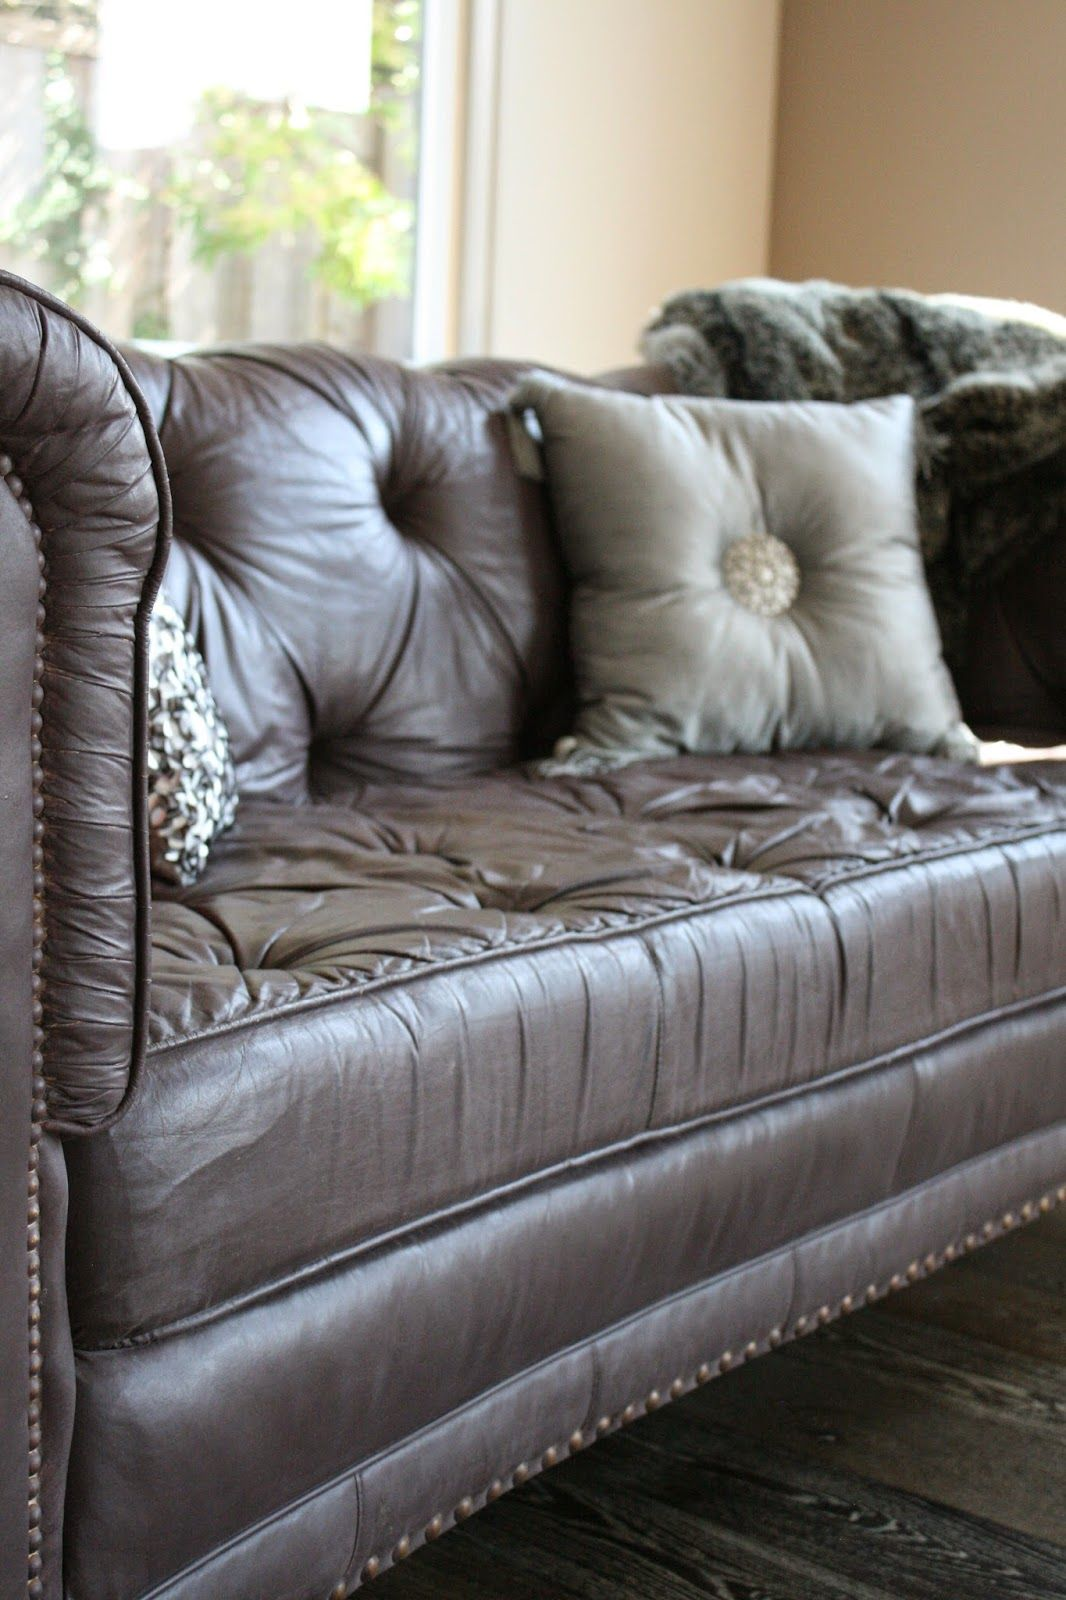 Reloved Rubbish: The Painted Sofa. Chalk paint finished with wax makes it feel like soft leather.